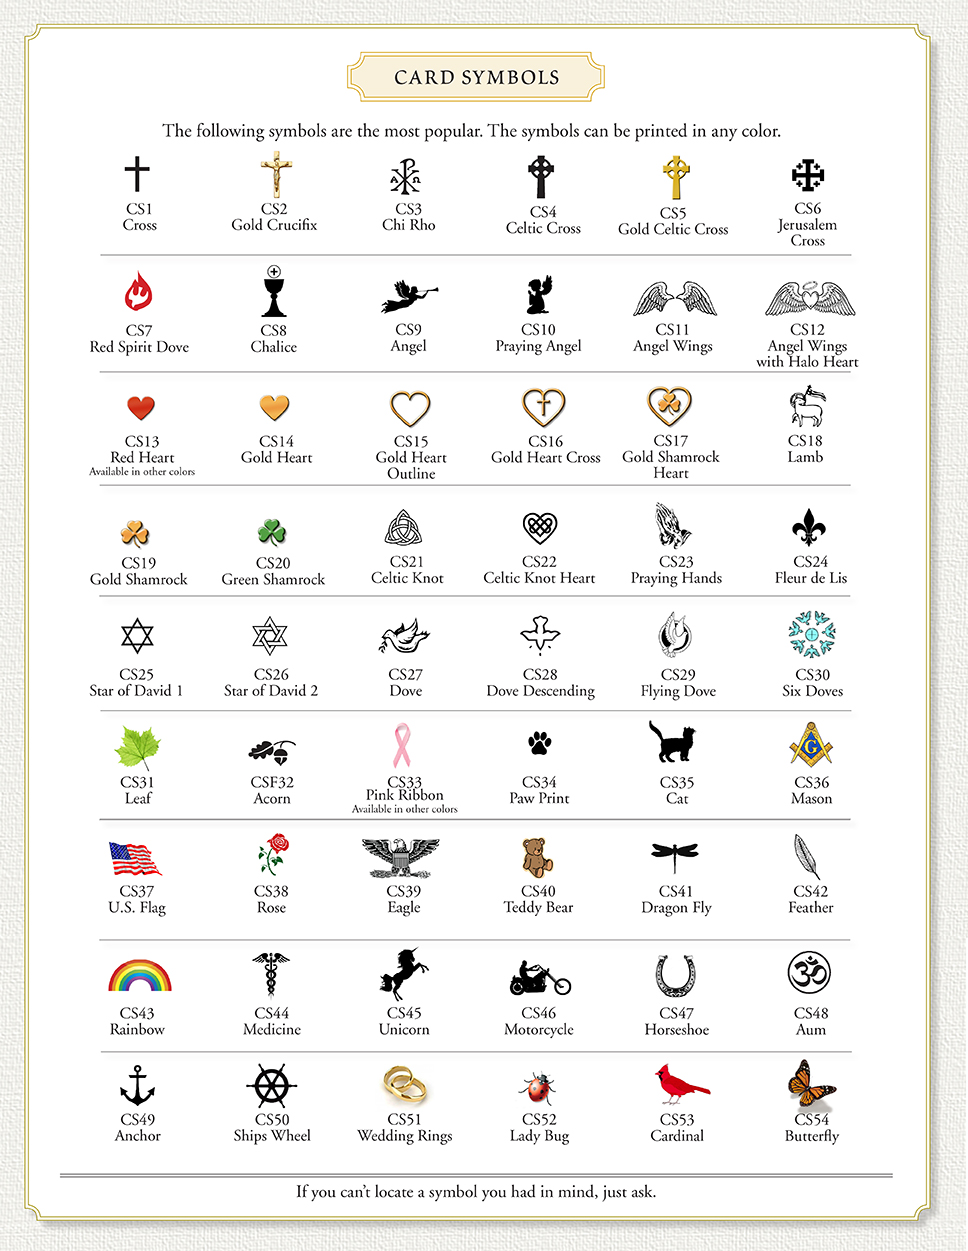 Card symbols for memorial cards.